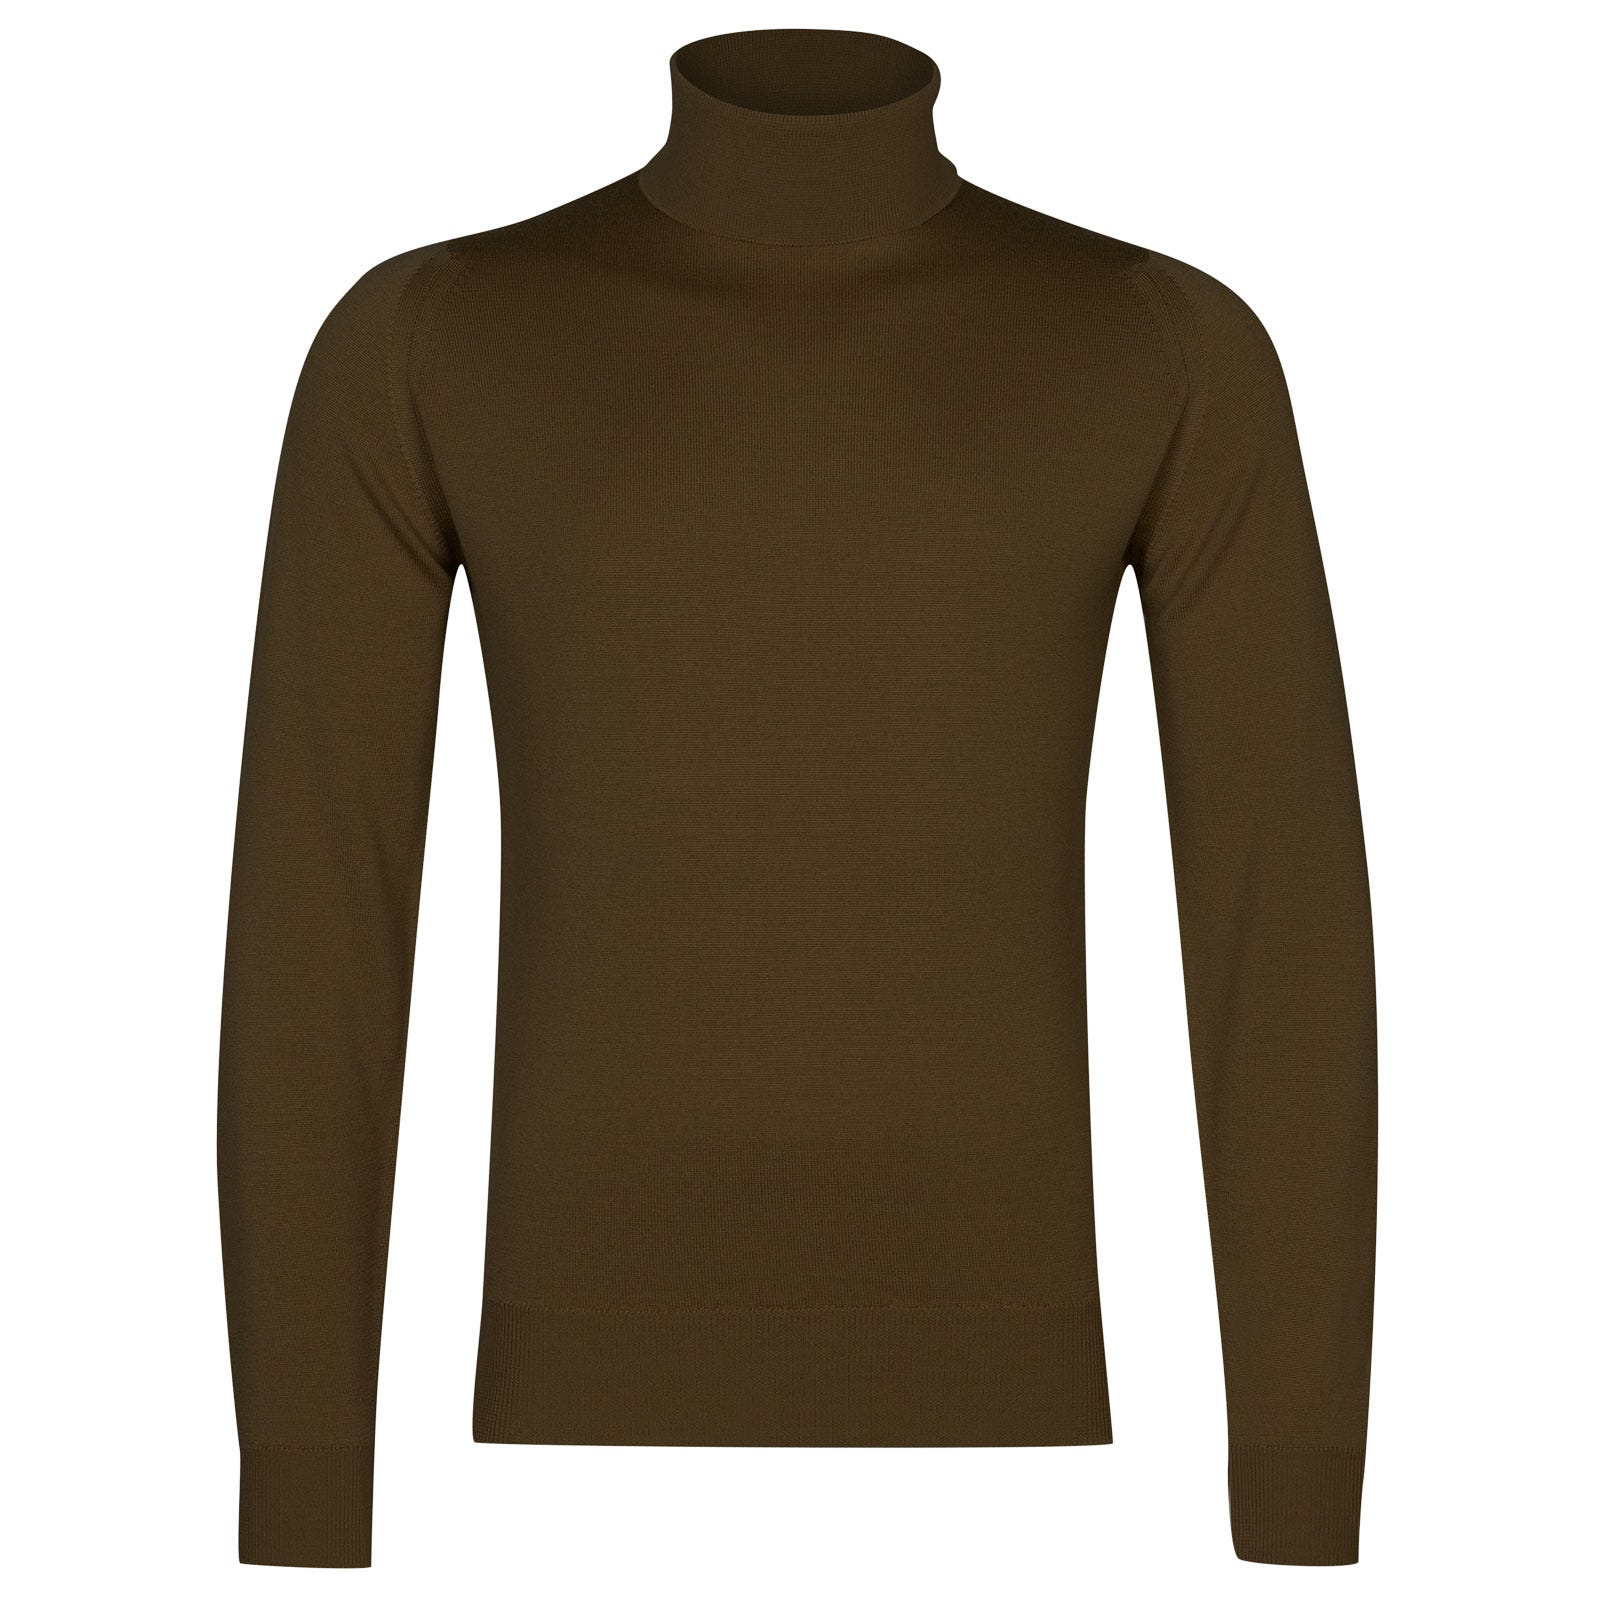 John Smedley connell Merino Wool Pullover in Kielder Green-XL